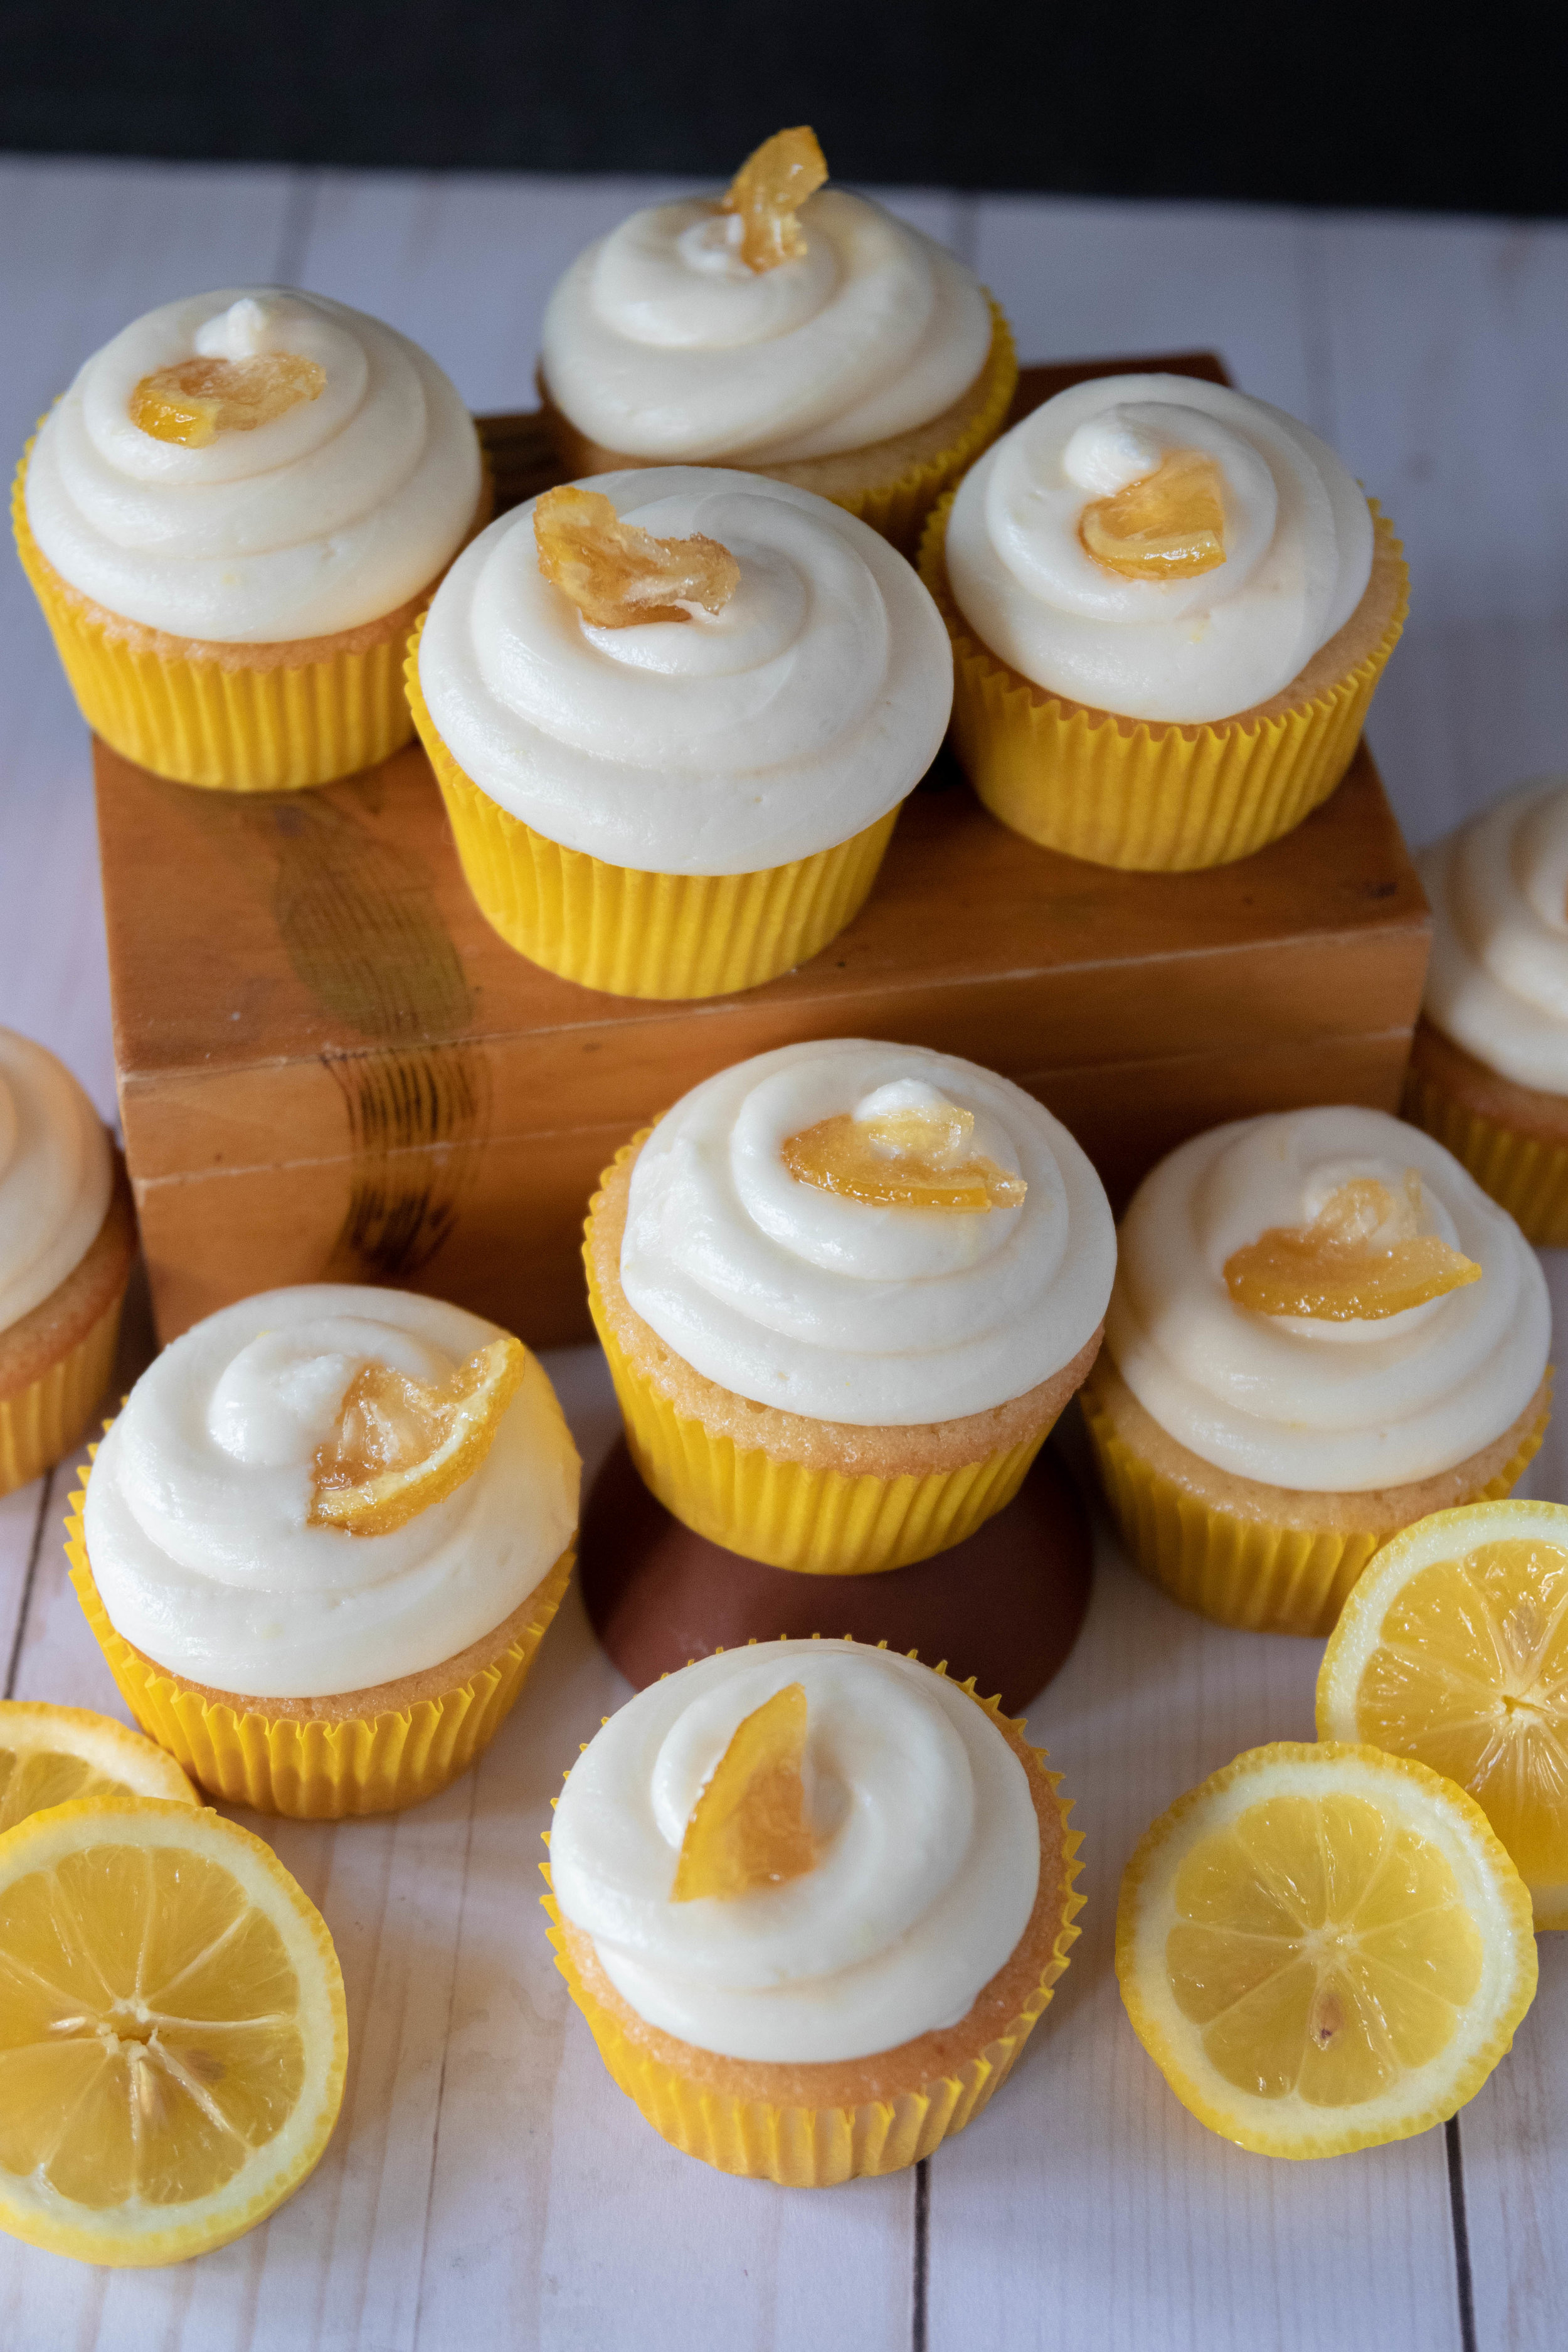 A spread of delicious vegan lemon cupcakes with cream cheese frosting garnished with candied lemons.